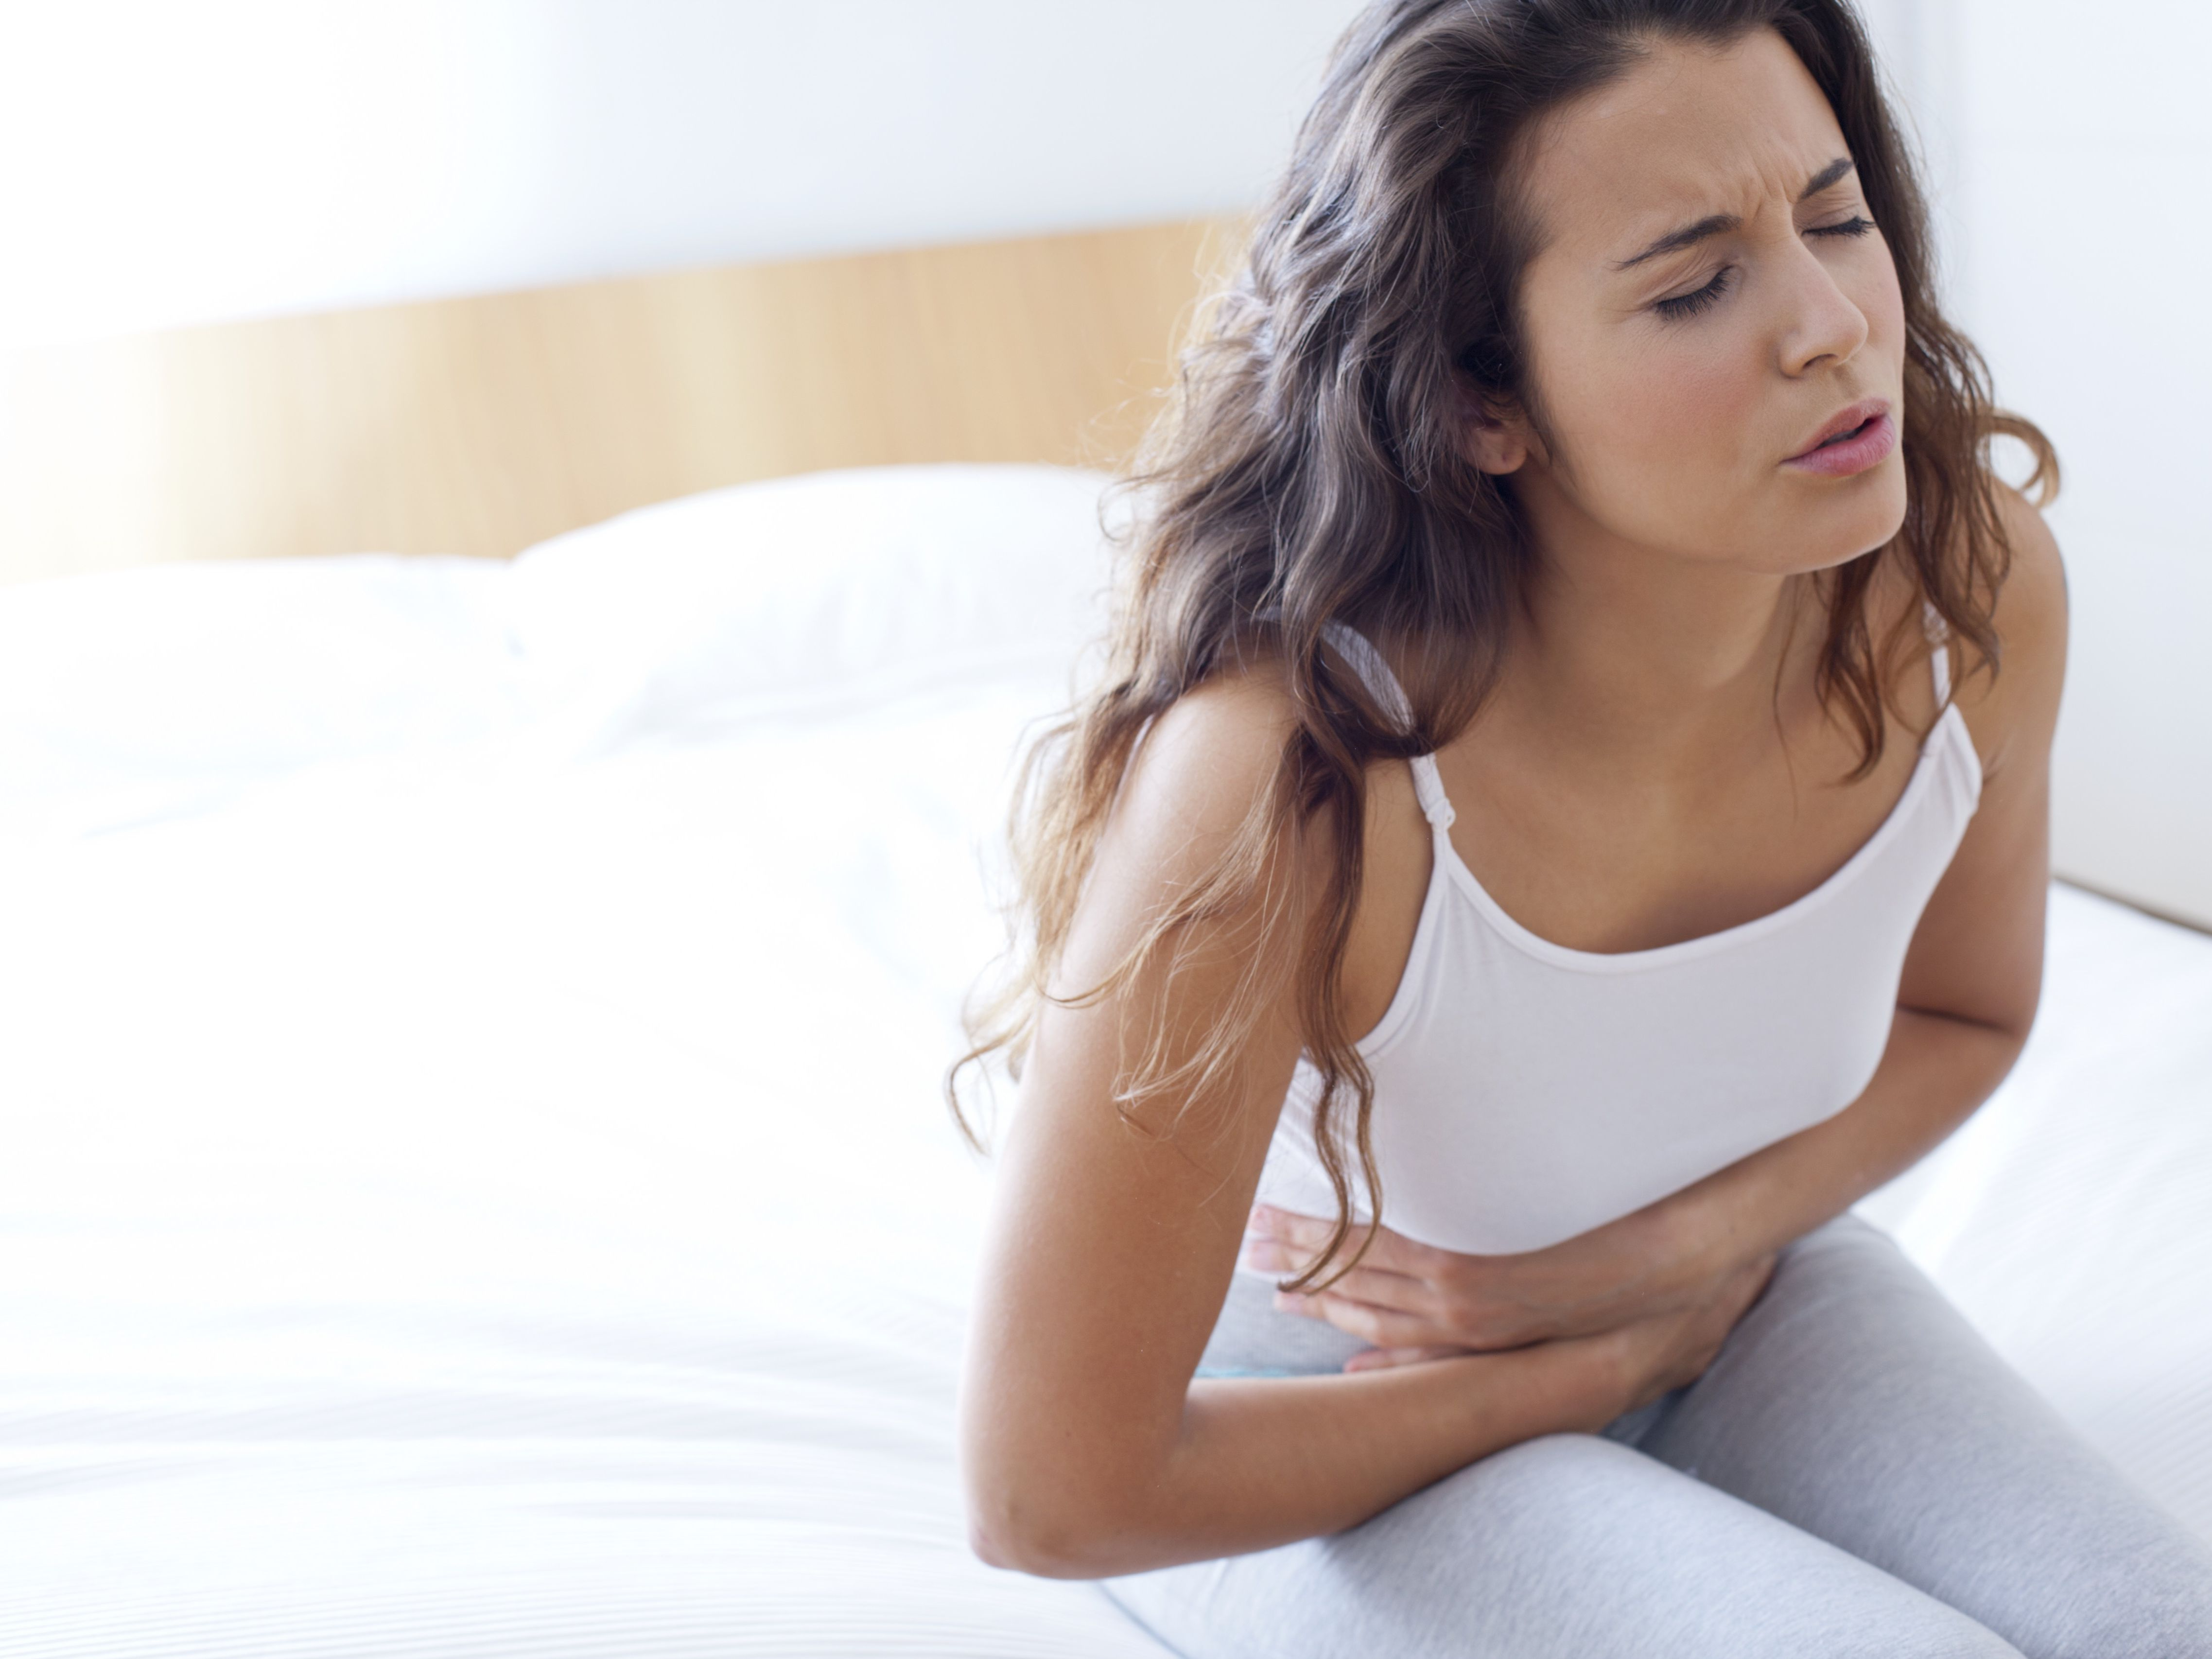 When Stomach Pain Is and Is Not an Emergency